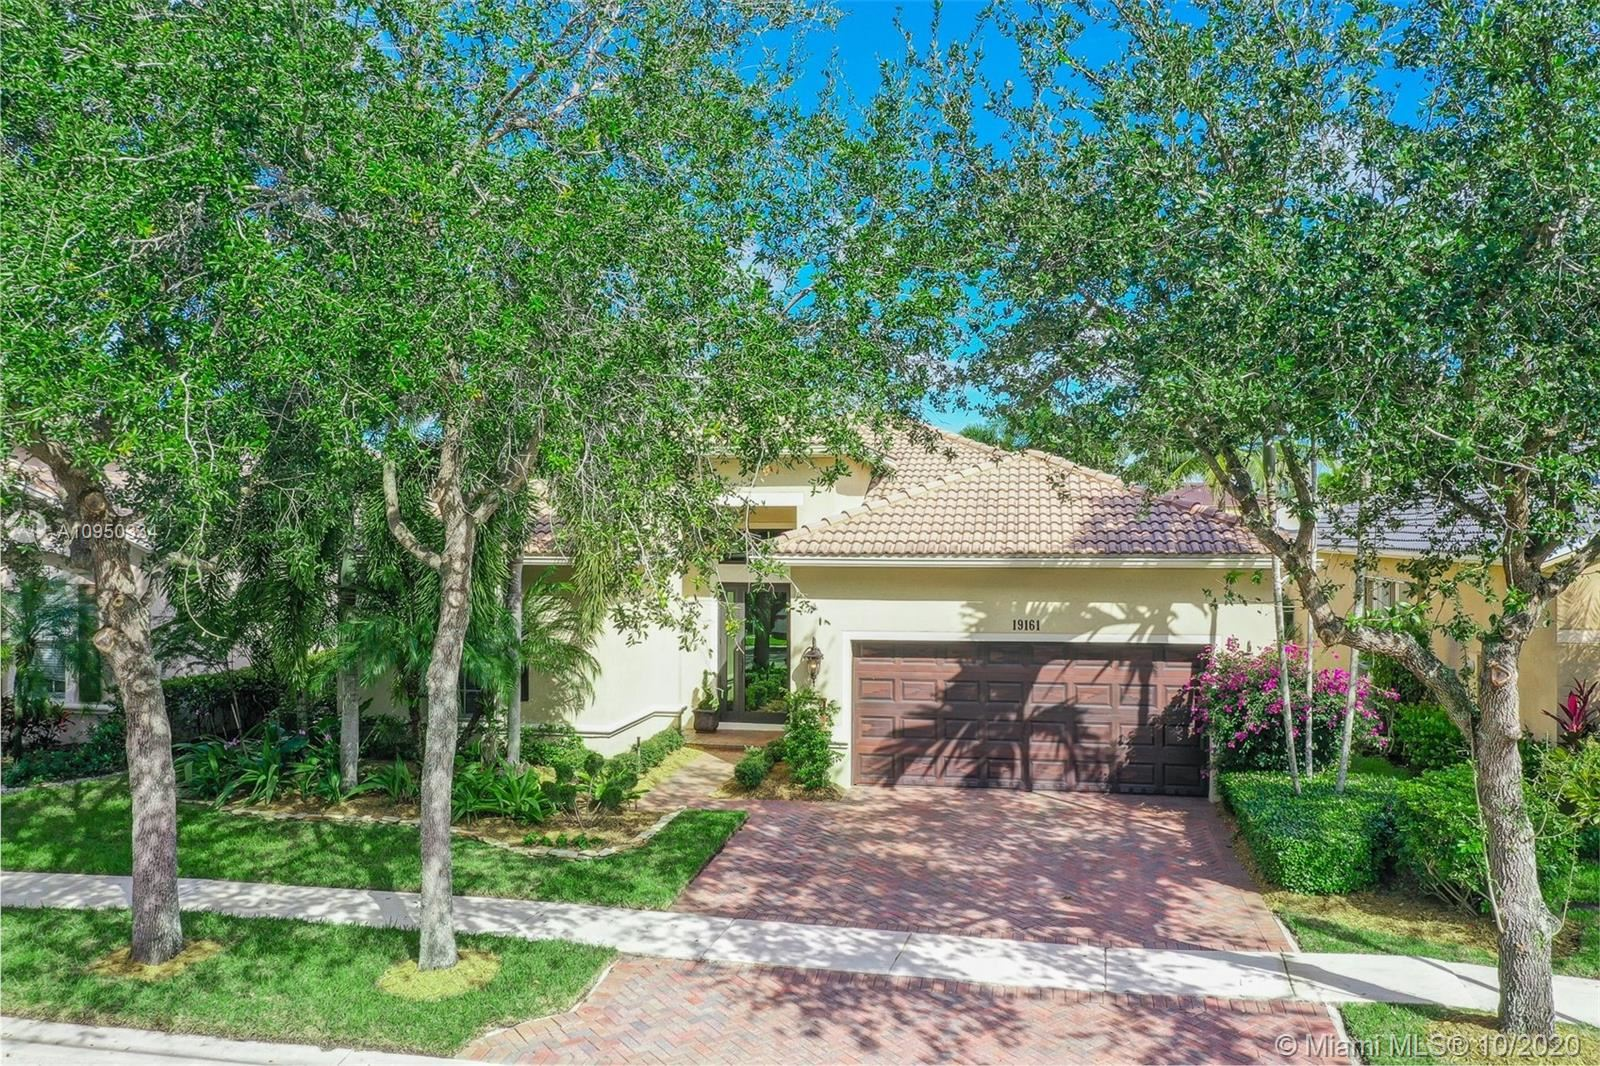 19161 Seneca Ave, Weston, FL 33332 - #: A10950334